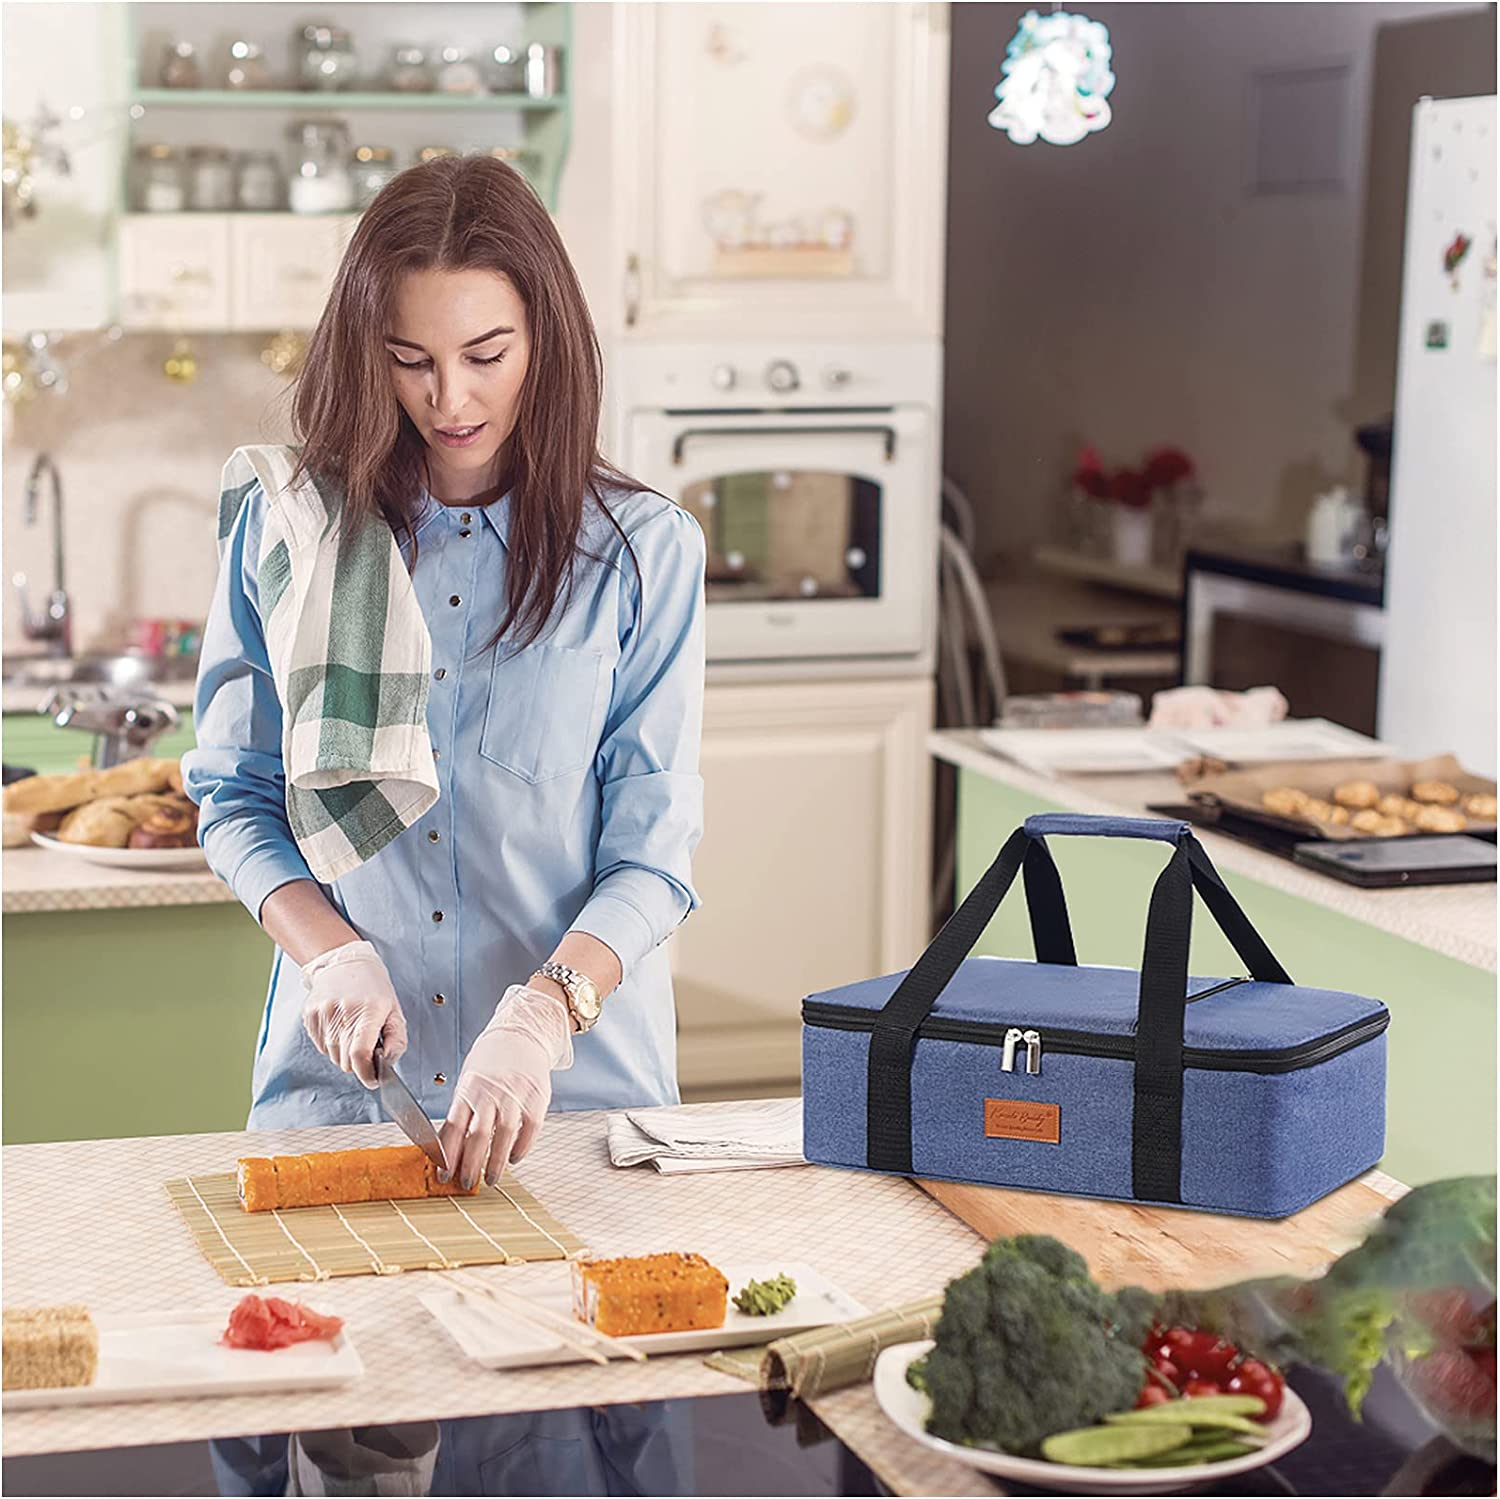 Lunch Bag for Women/Men,Beach Bag,Insulated Casserole Carrier, Container for Hot or Cold Food Transport,Tote Bag of Travel/Party/ Picnic/ Gifts,Lasagna Lugger,Fits 9